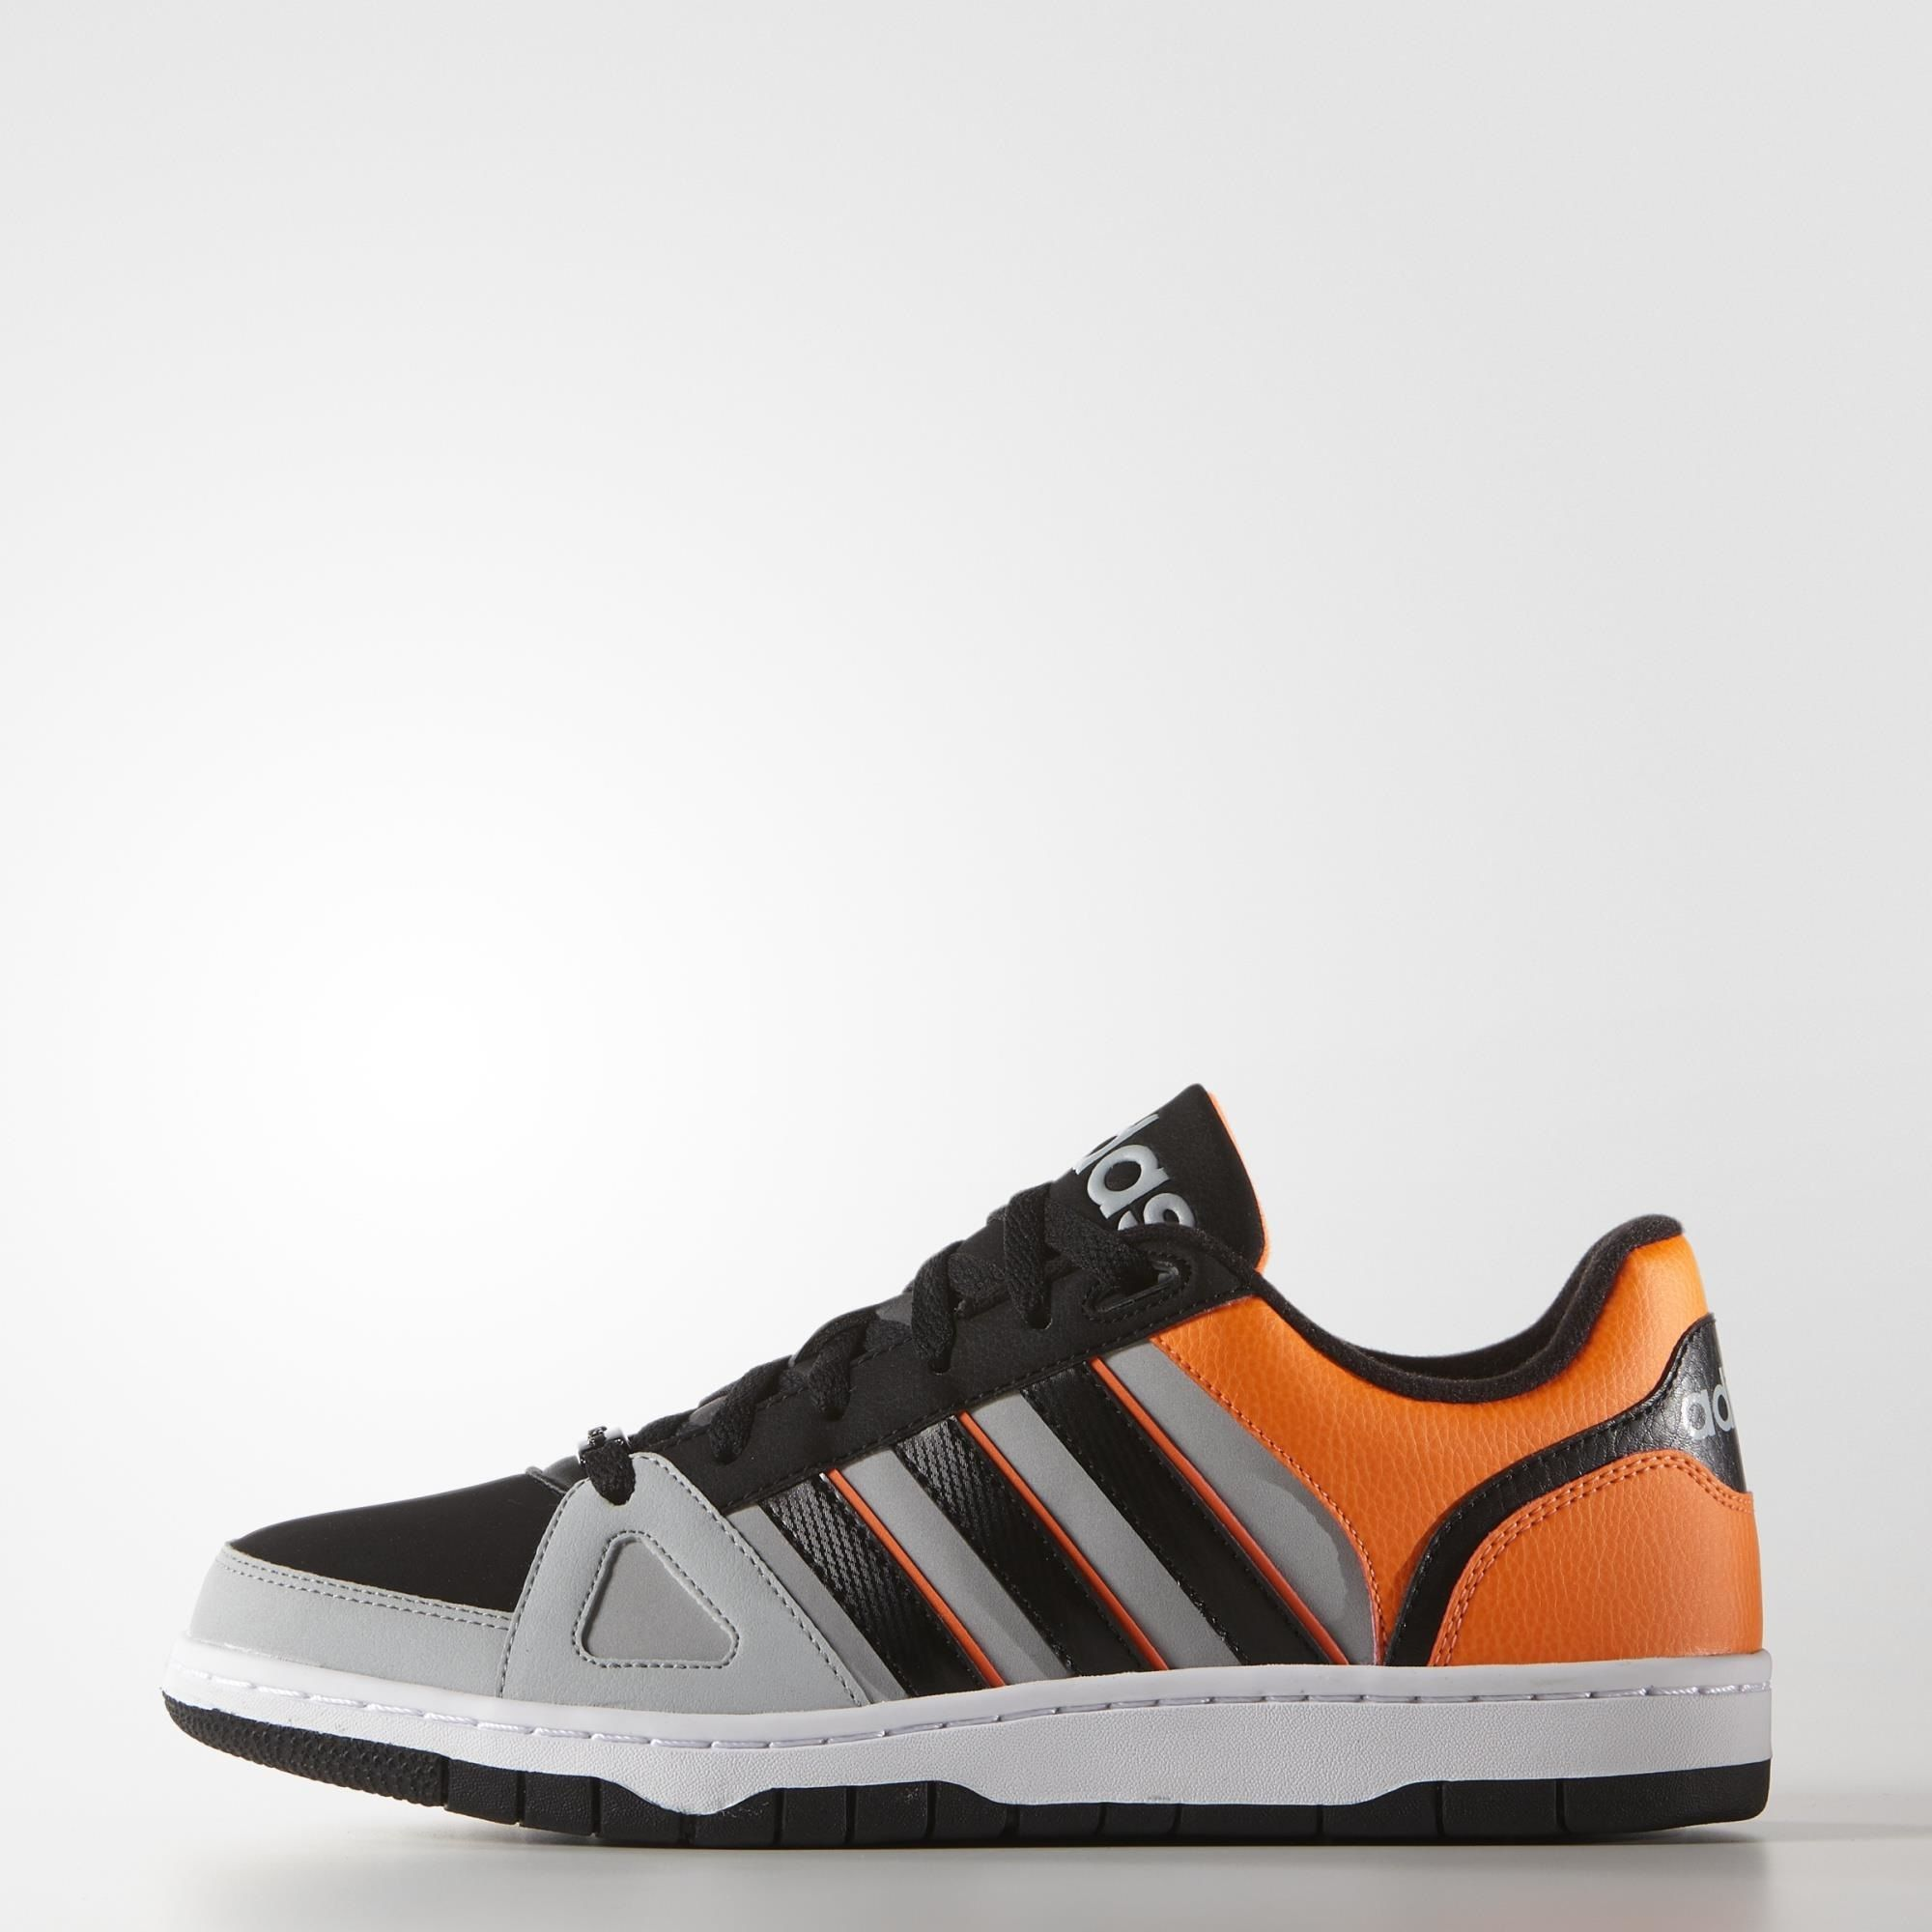 adidas neo daily team homme, De Luxe Adidas NEO Hoops Team Homme Onix/noir/solaire oranje Chaussure  DL30443